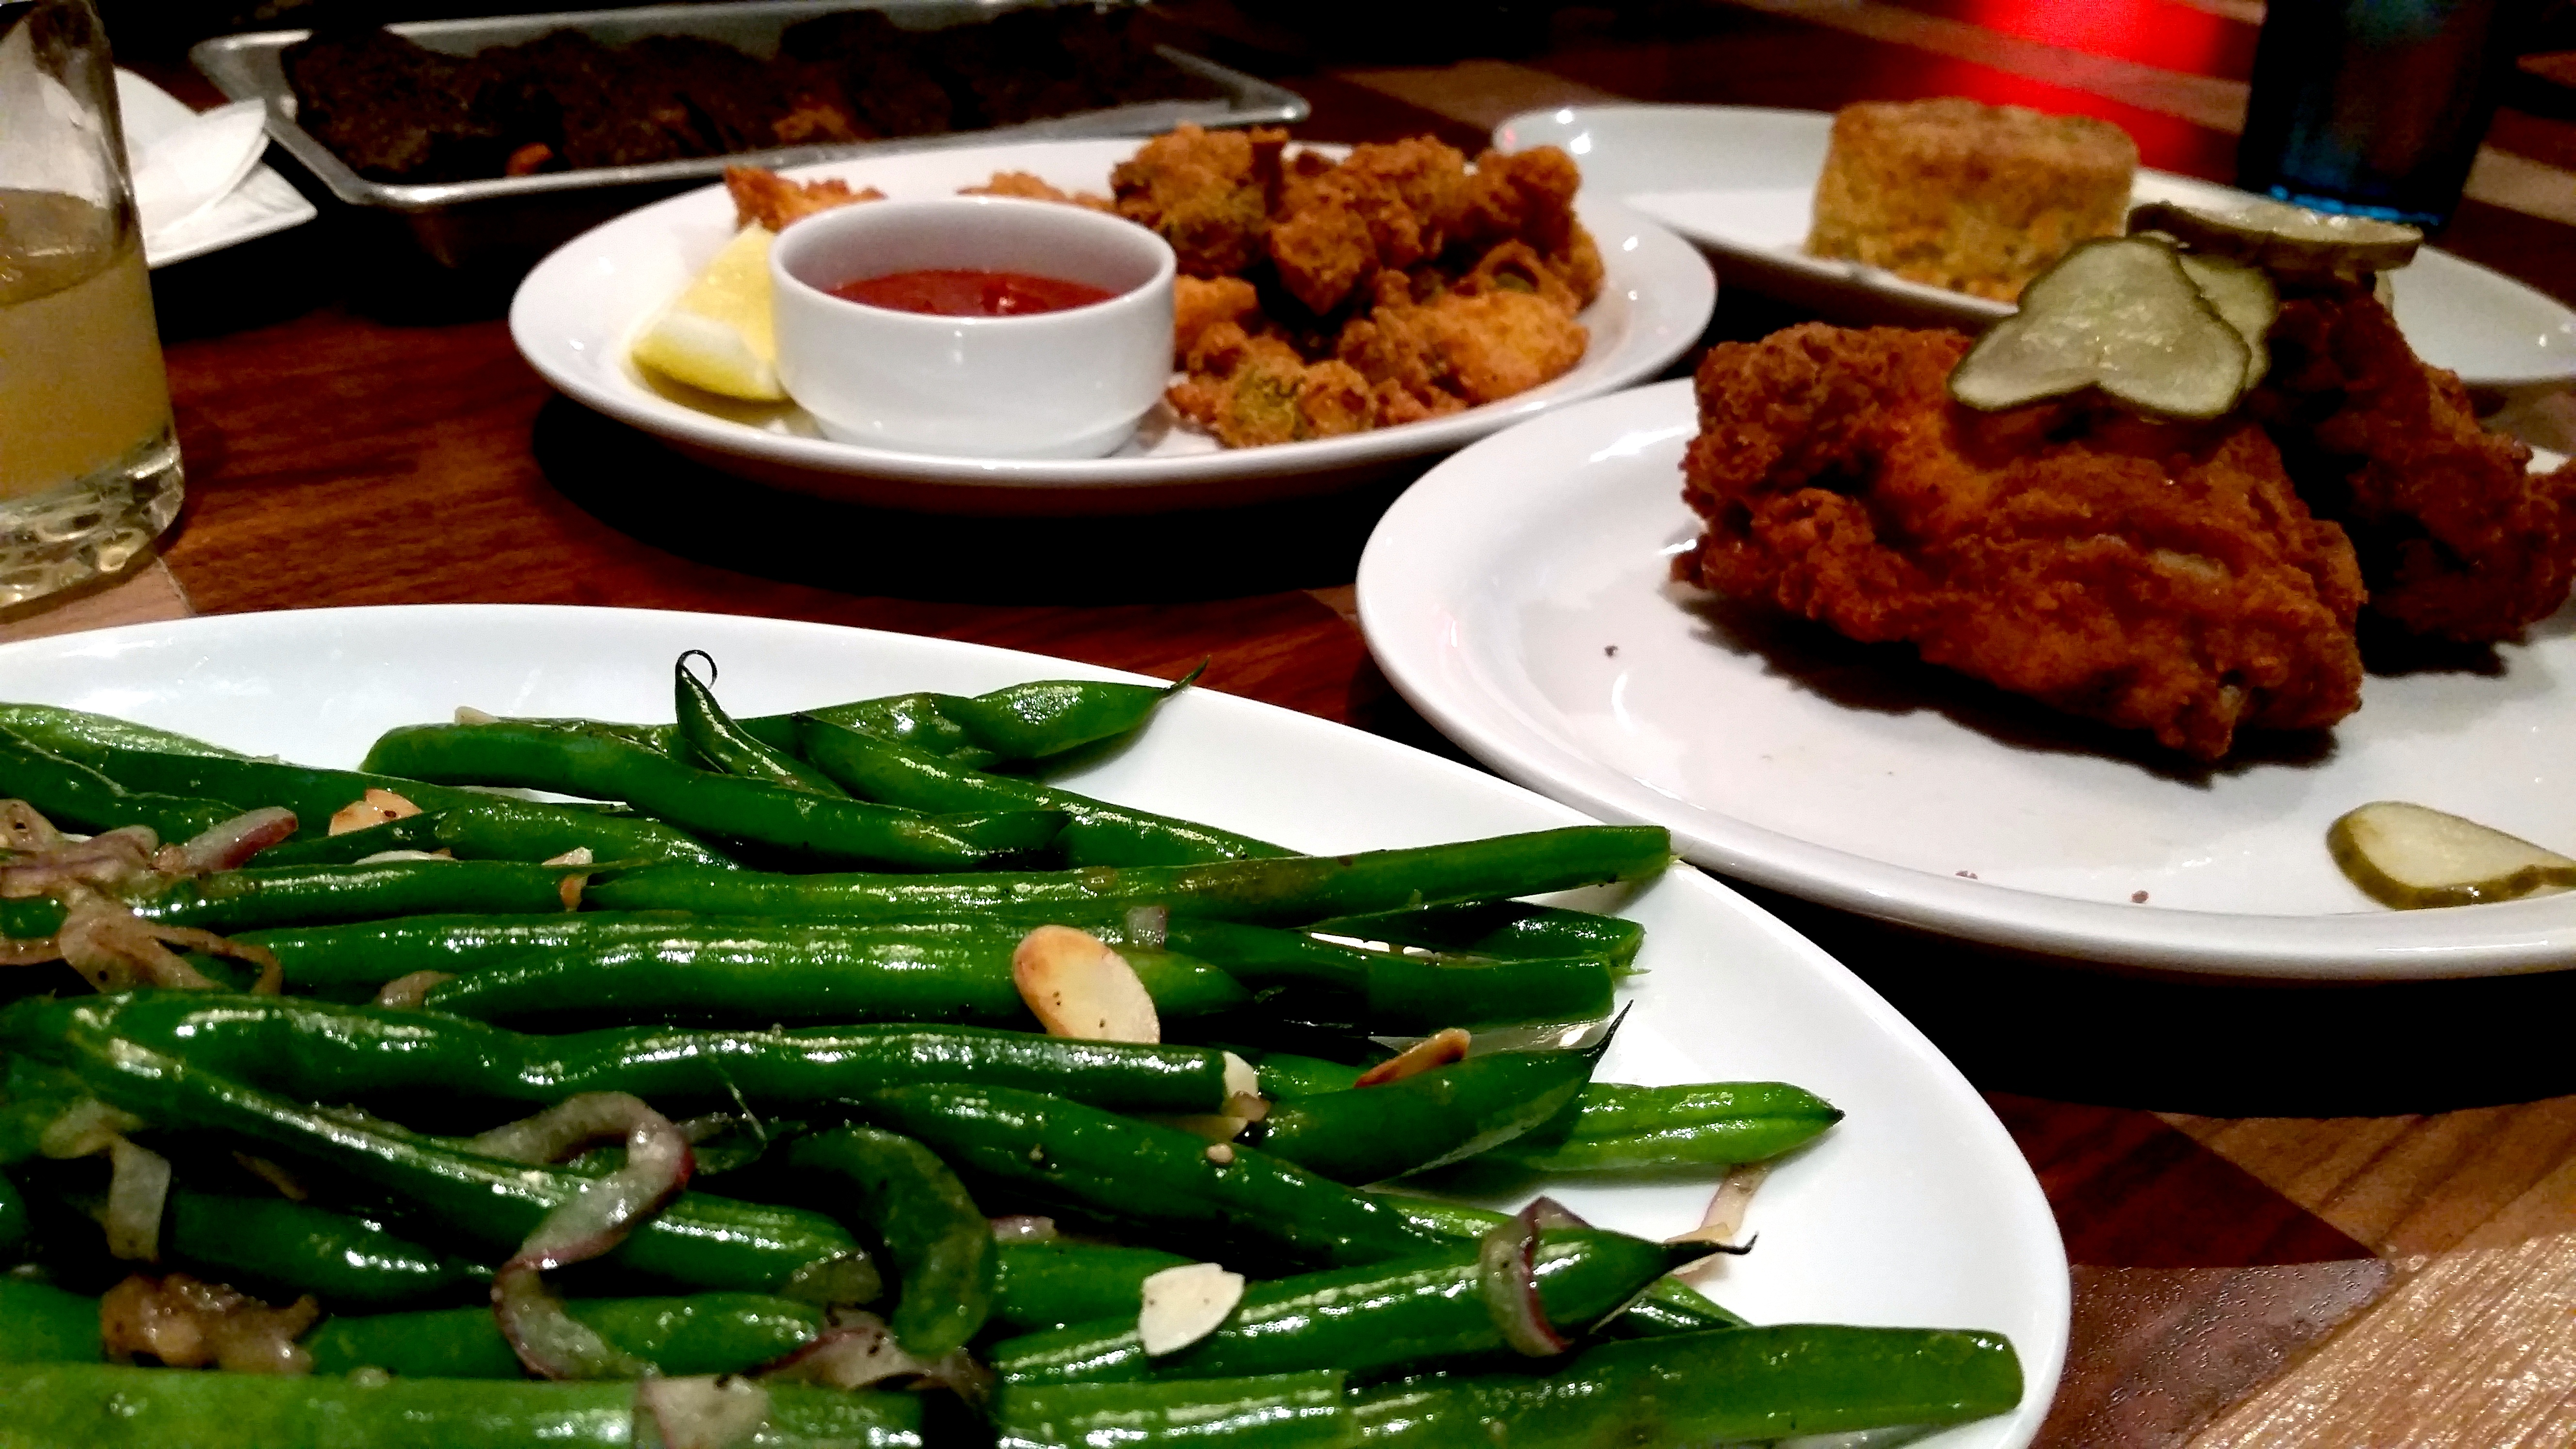 Green beans, chicken, gator bites, and biscuit plates